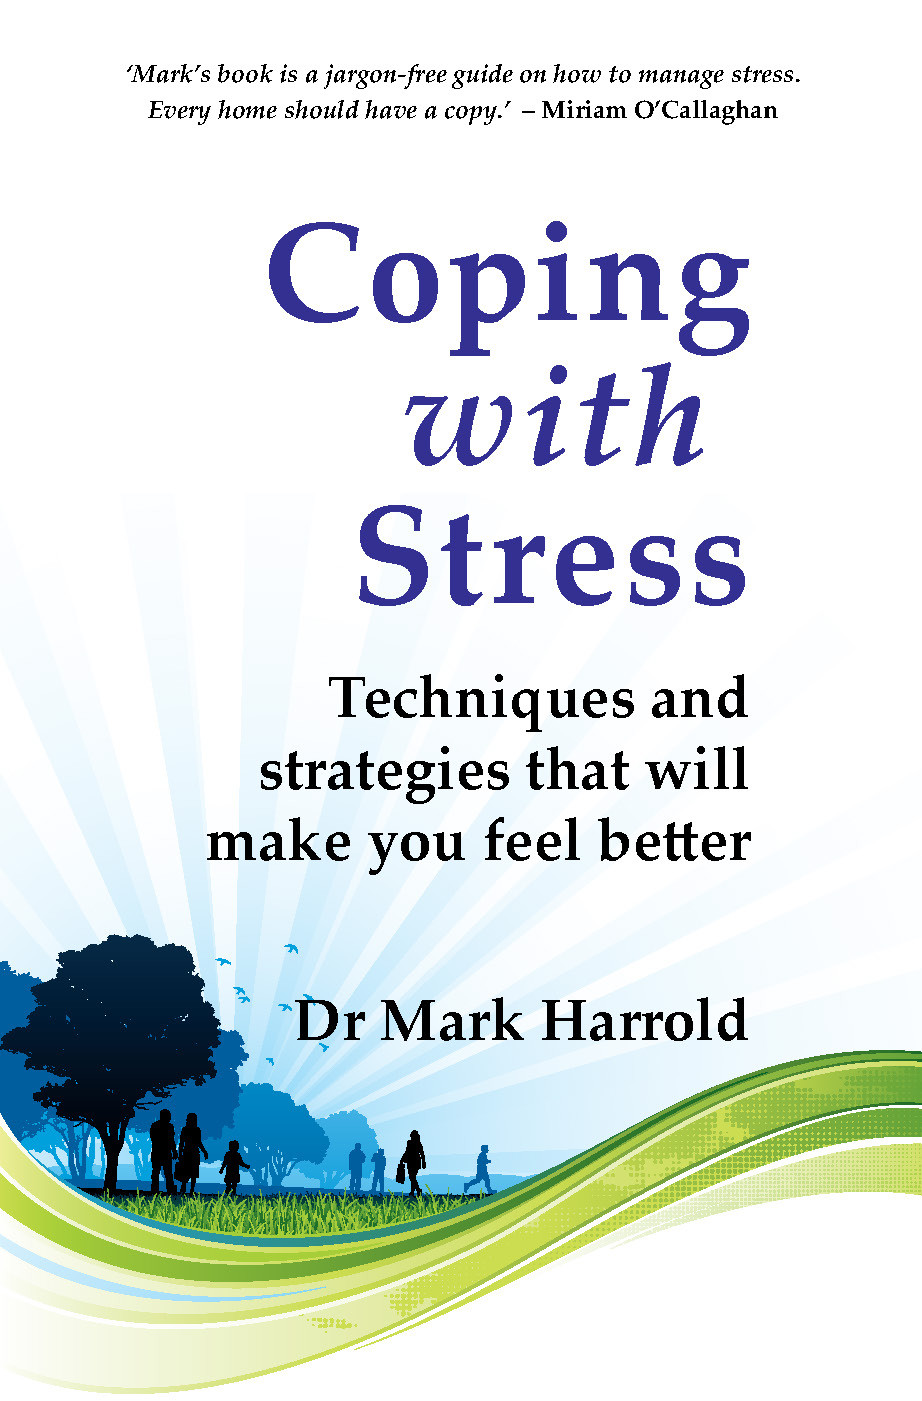 essay article how to cope with stress